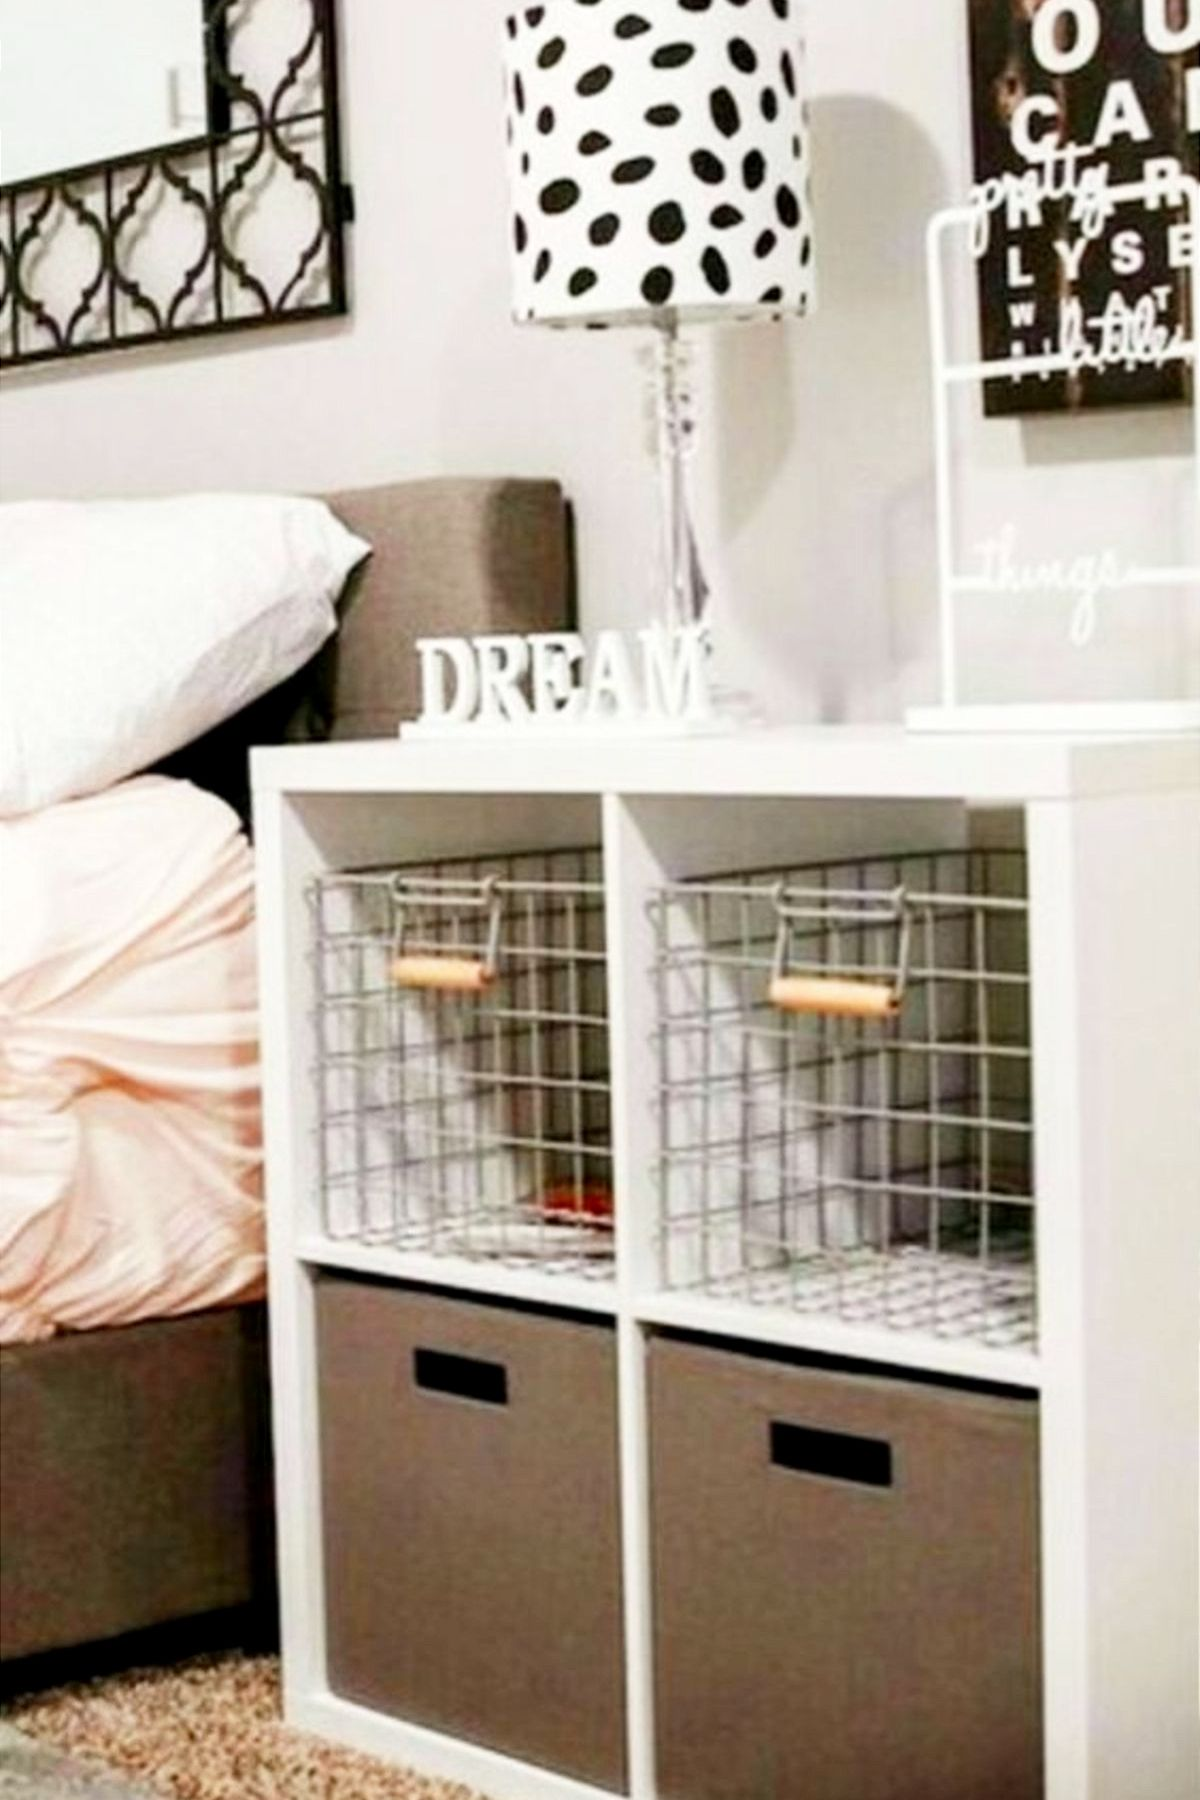 Small Bedroom Storage Hacks Clever Storage Ideas For Small Bedrooms Decluttering Your Life Small Bedroom Storage Small Room Organization Bedroom Storage